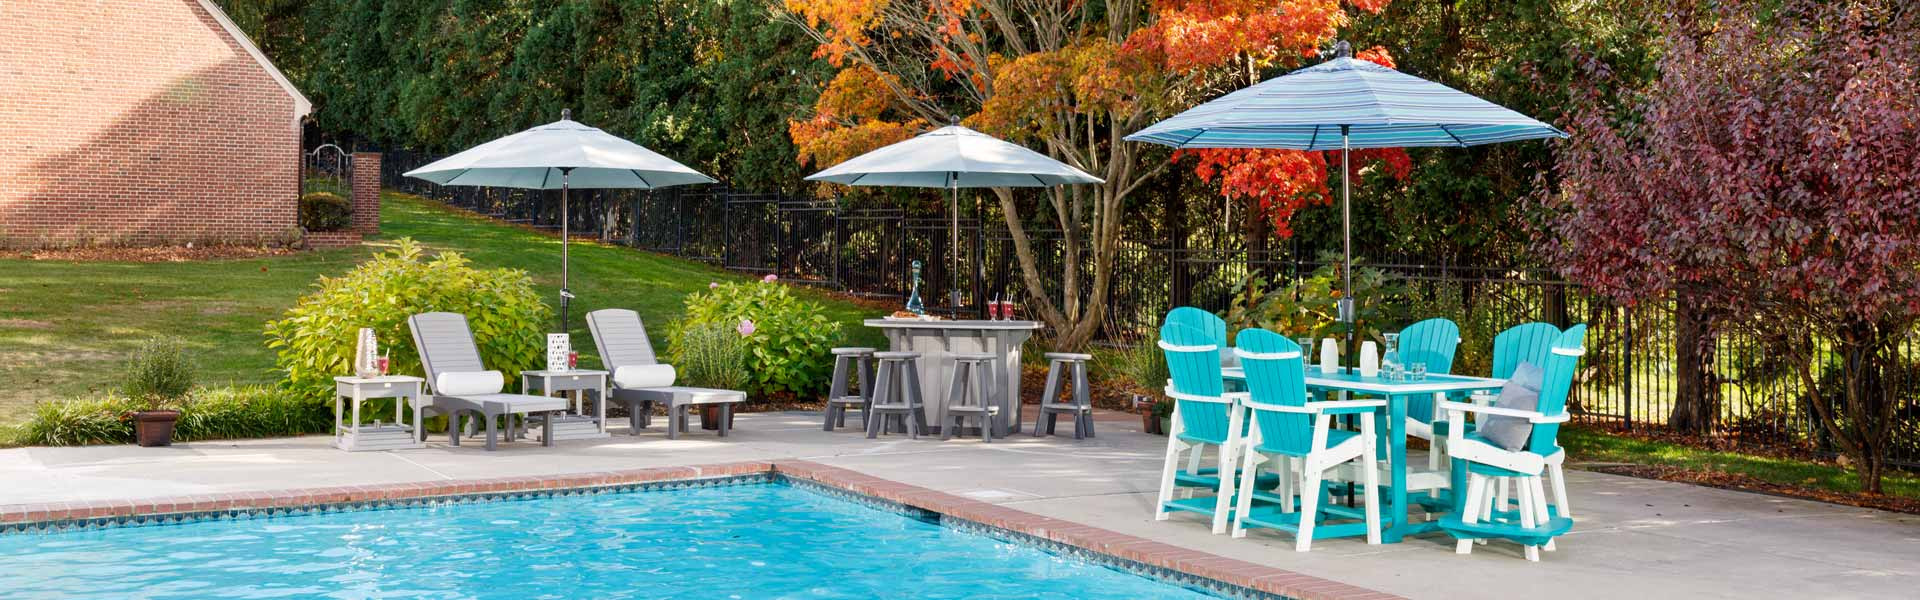 Poly furniture sets with outdoor umbrellas by pool